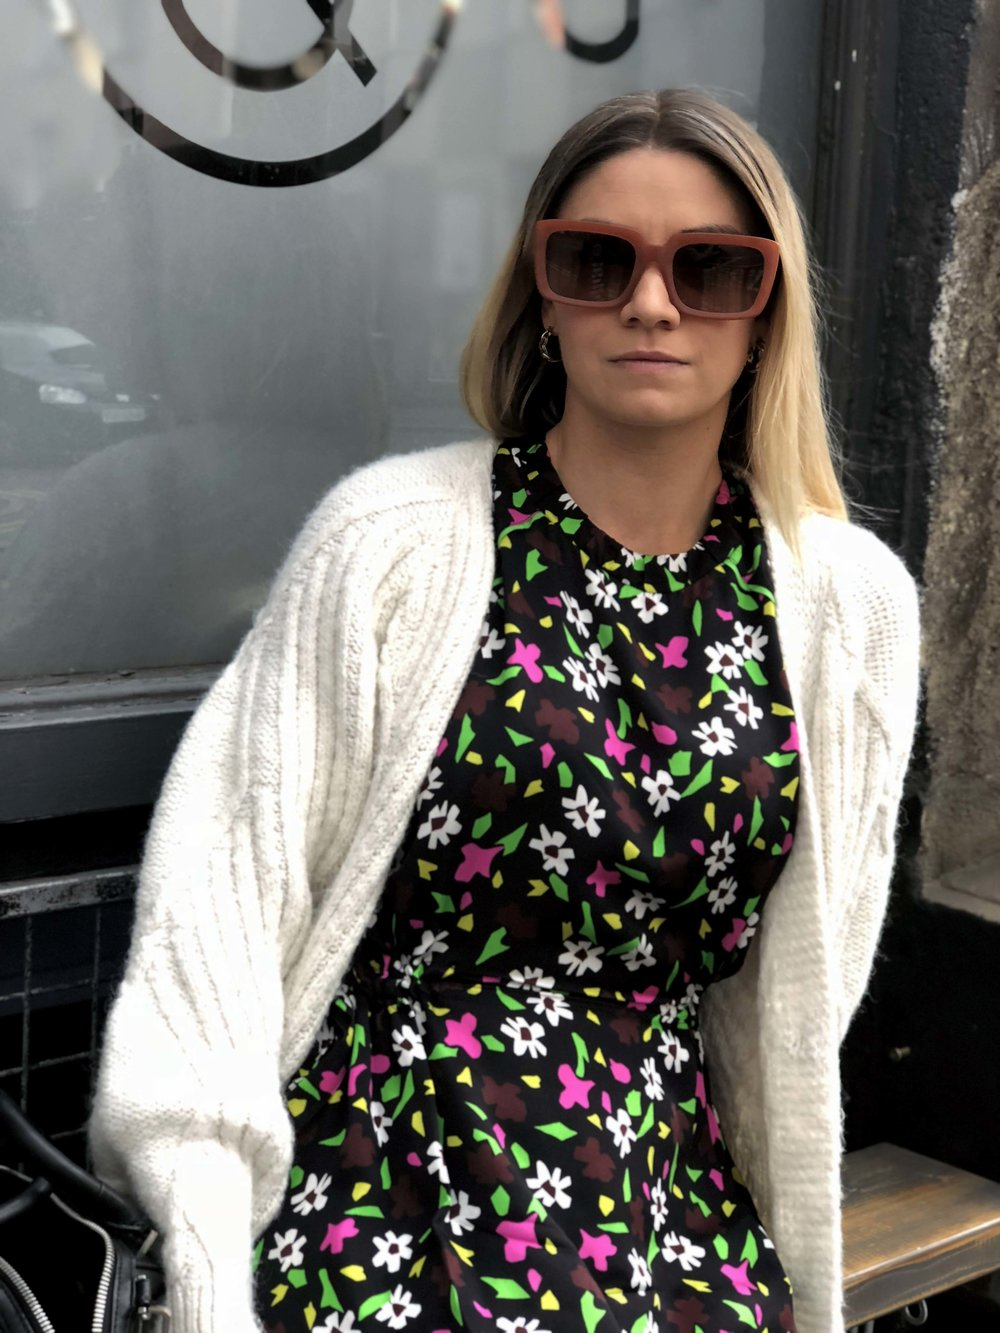 TOPSHOP BOUTIQUE DRESS, CHUNKY CARDIGAN, NORTHERN MAGPIE, MANCHESTER BRUNCH PLACES 6